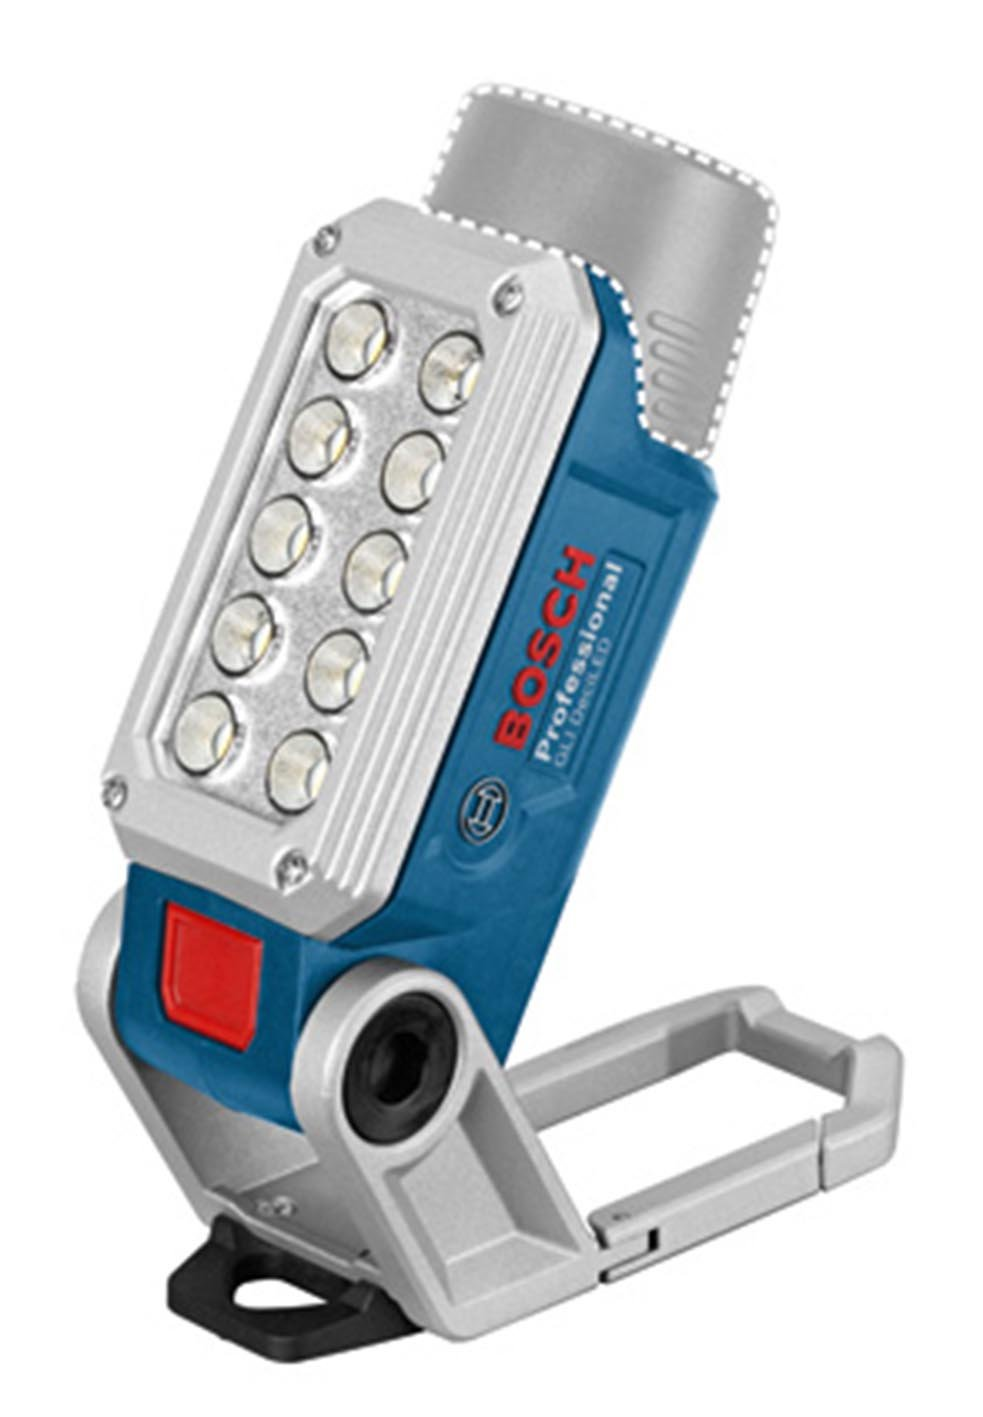 Bosch Professional GLI DeciLED Cordless Worklight (Without Battery and Charger) - Carton 06014A0000